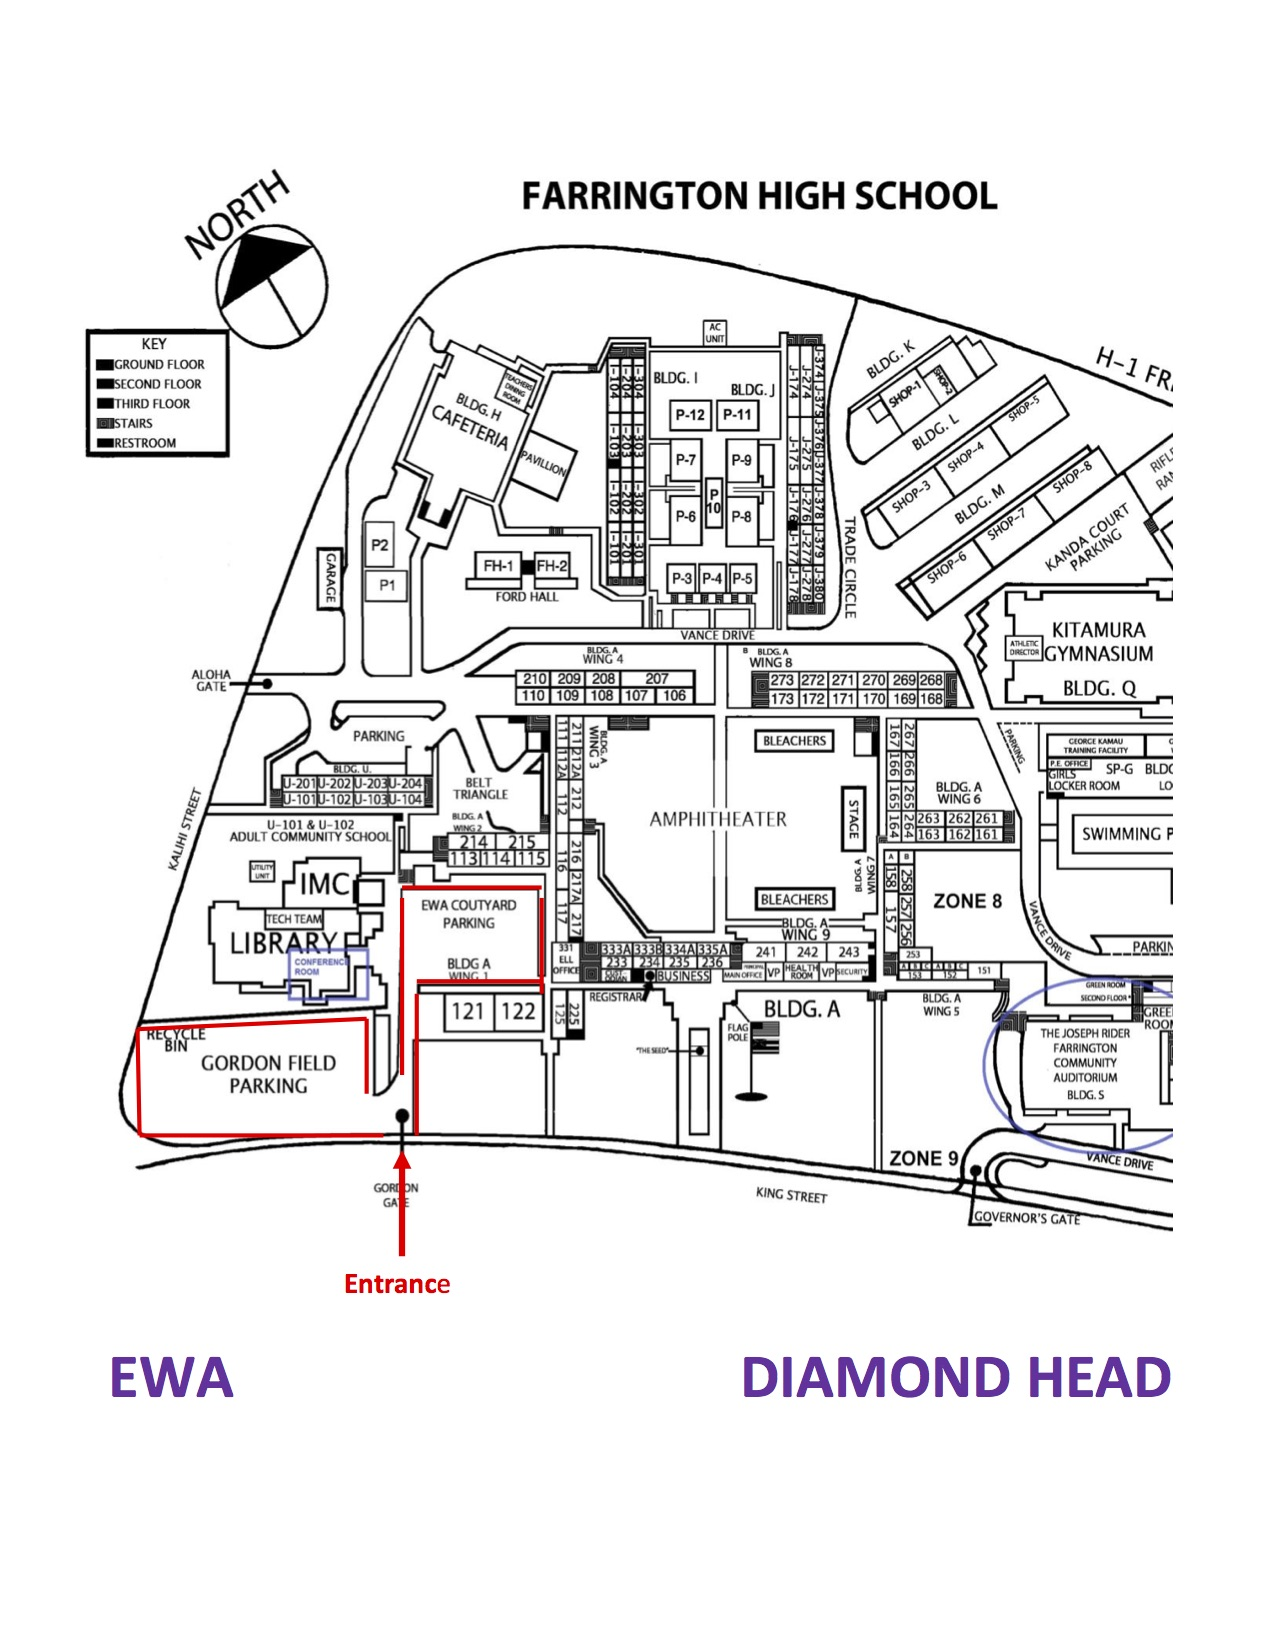 Farrington High School Parking - Click to see a larger image.